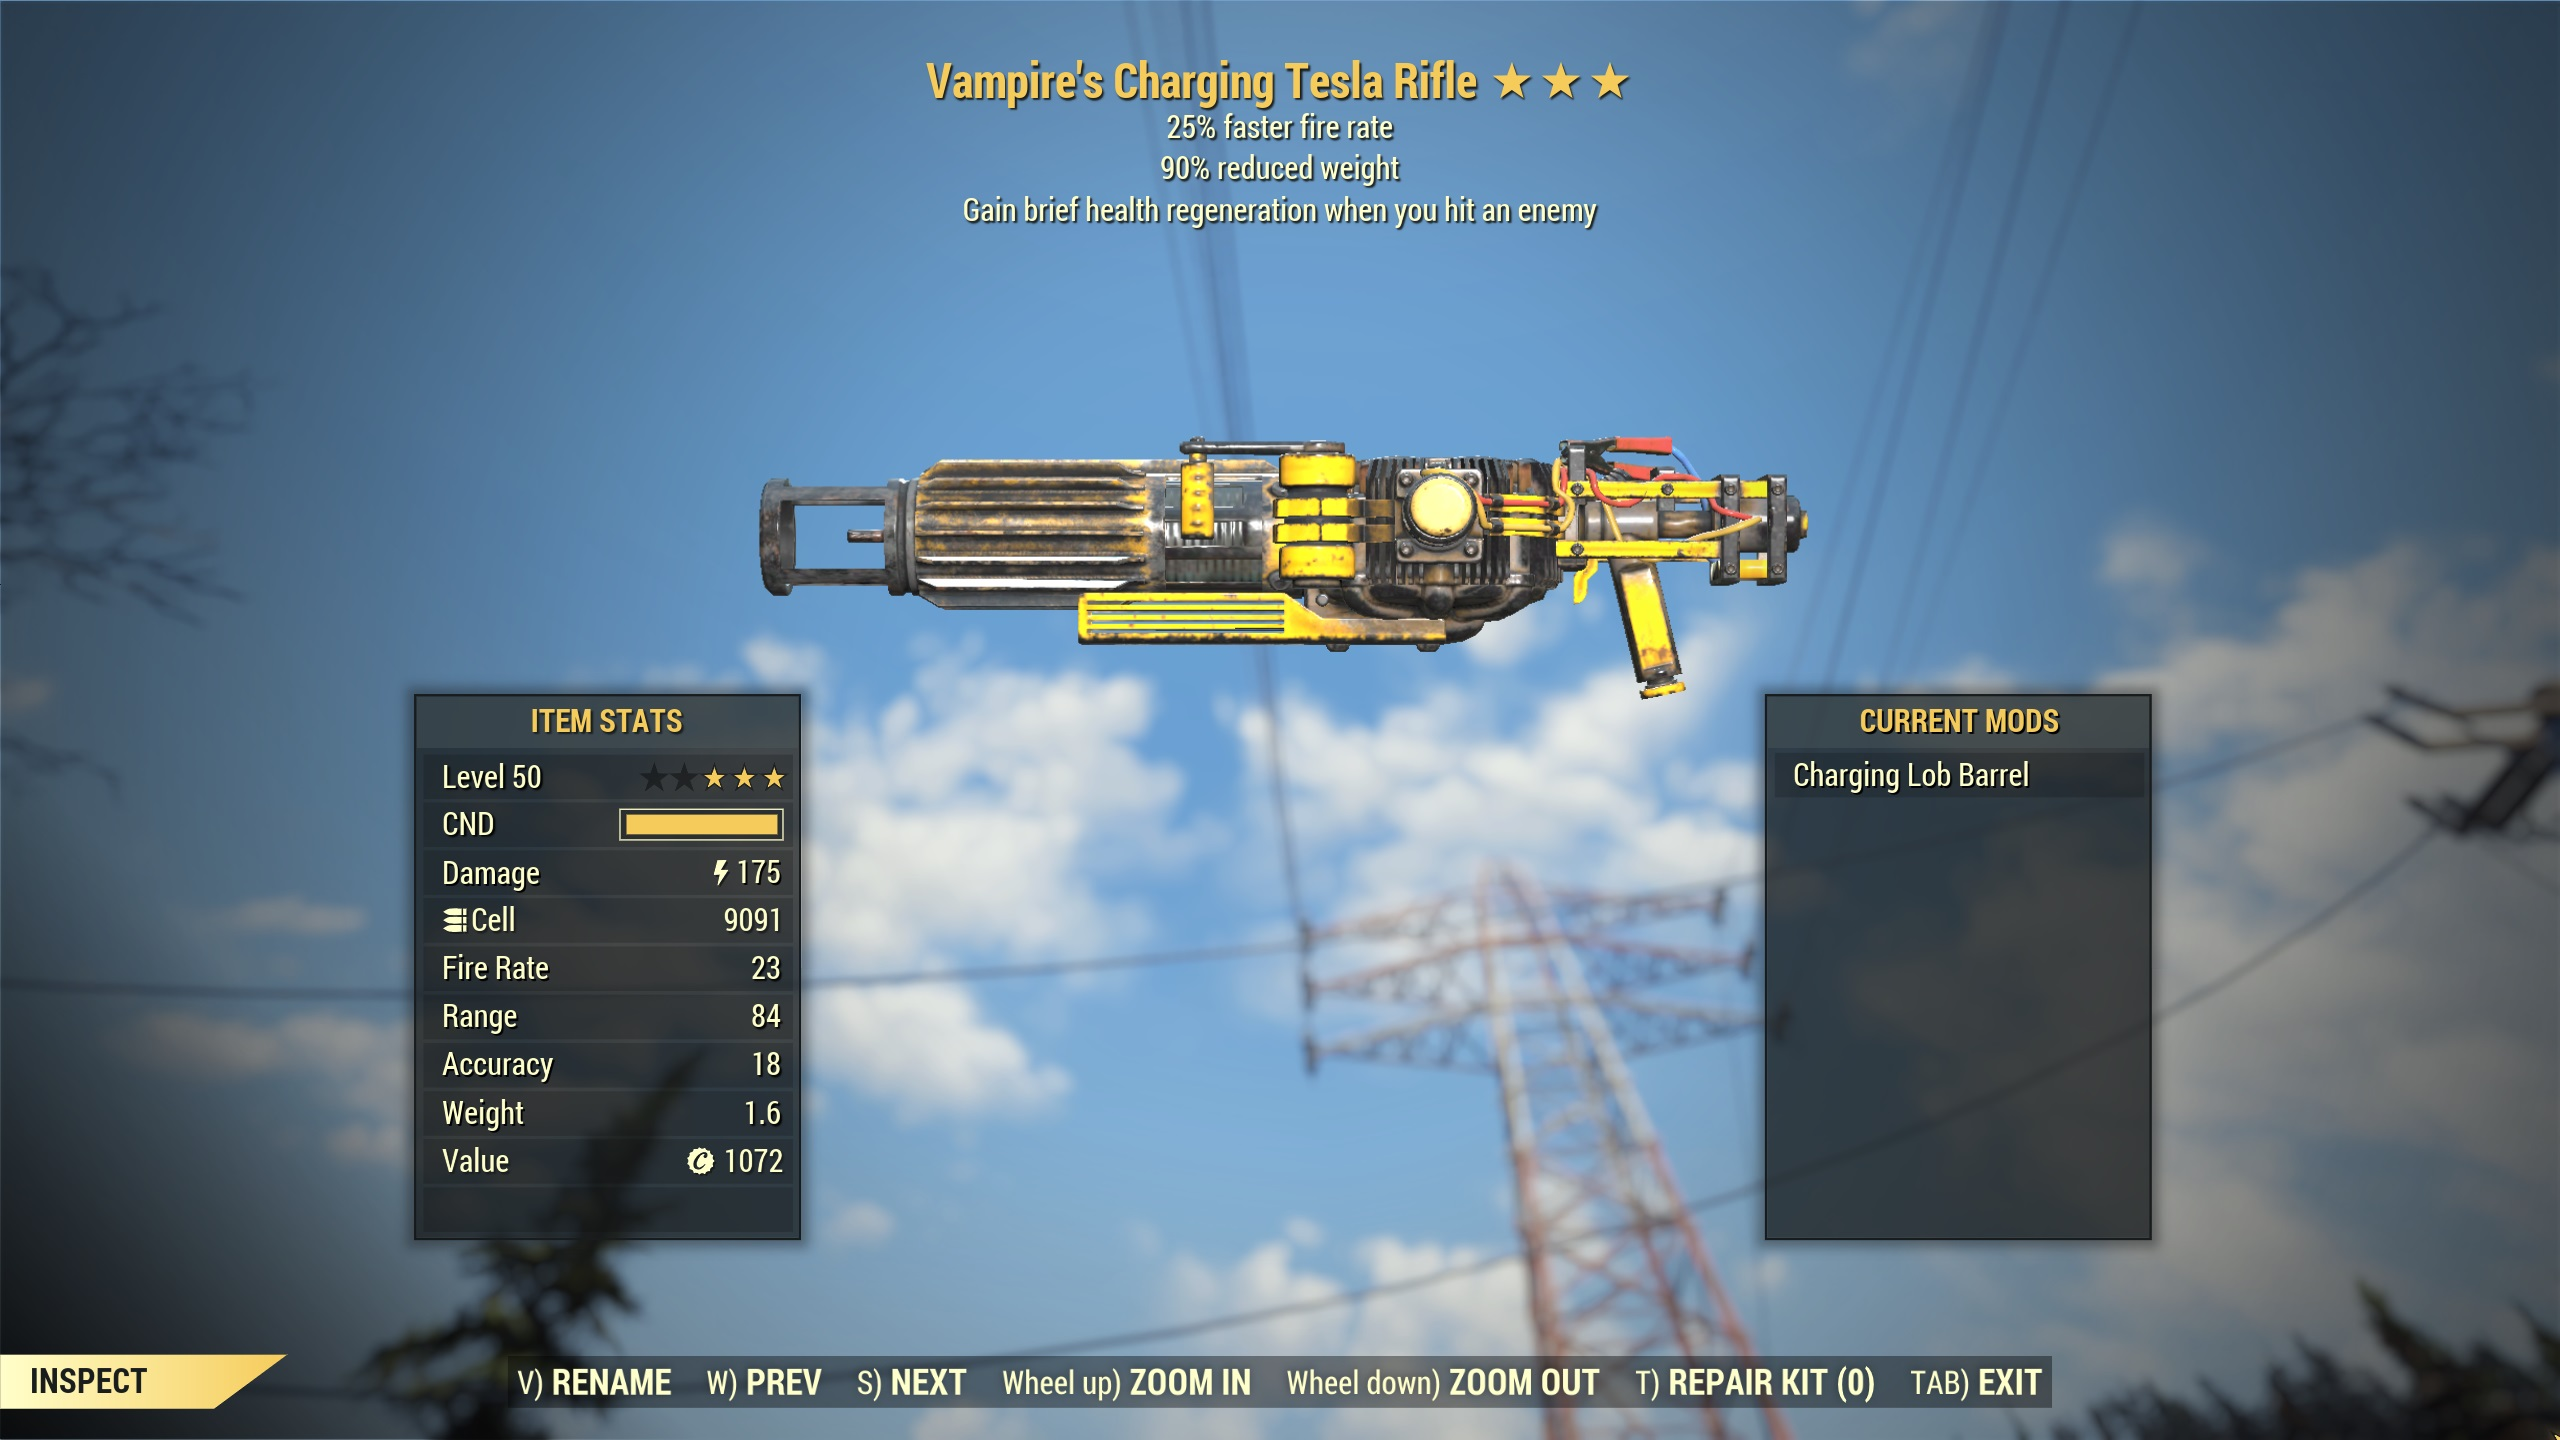 ★★★ Vampires Tesla Rifle[25% Faster Fire Rate][90% Reduced Weight]   LOBBER BARREL   FAST DELIVERY  